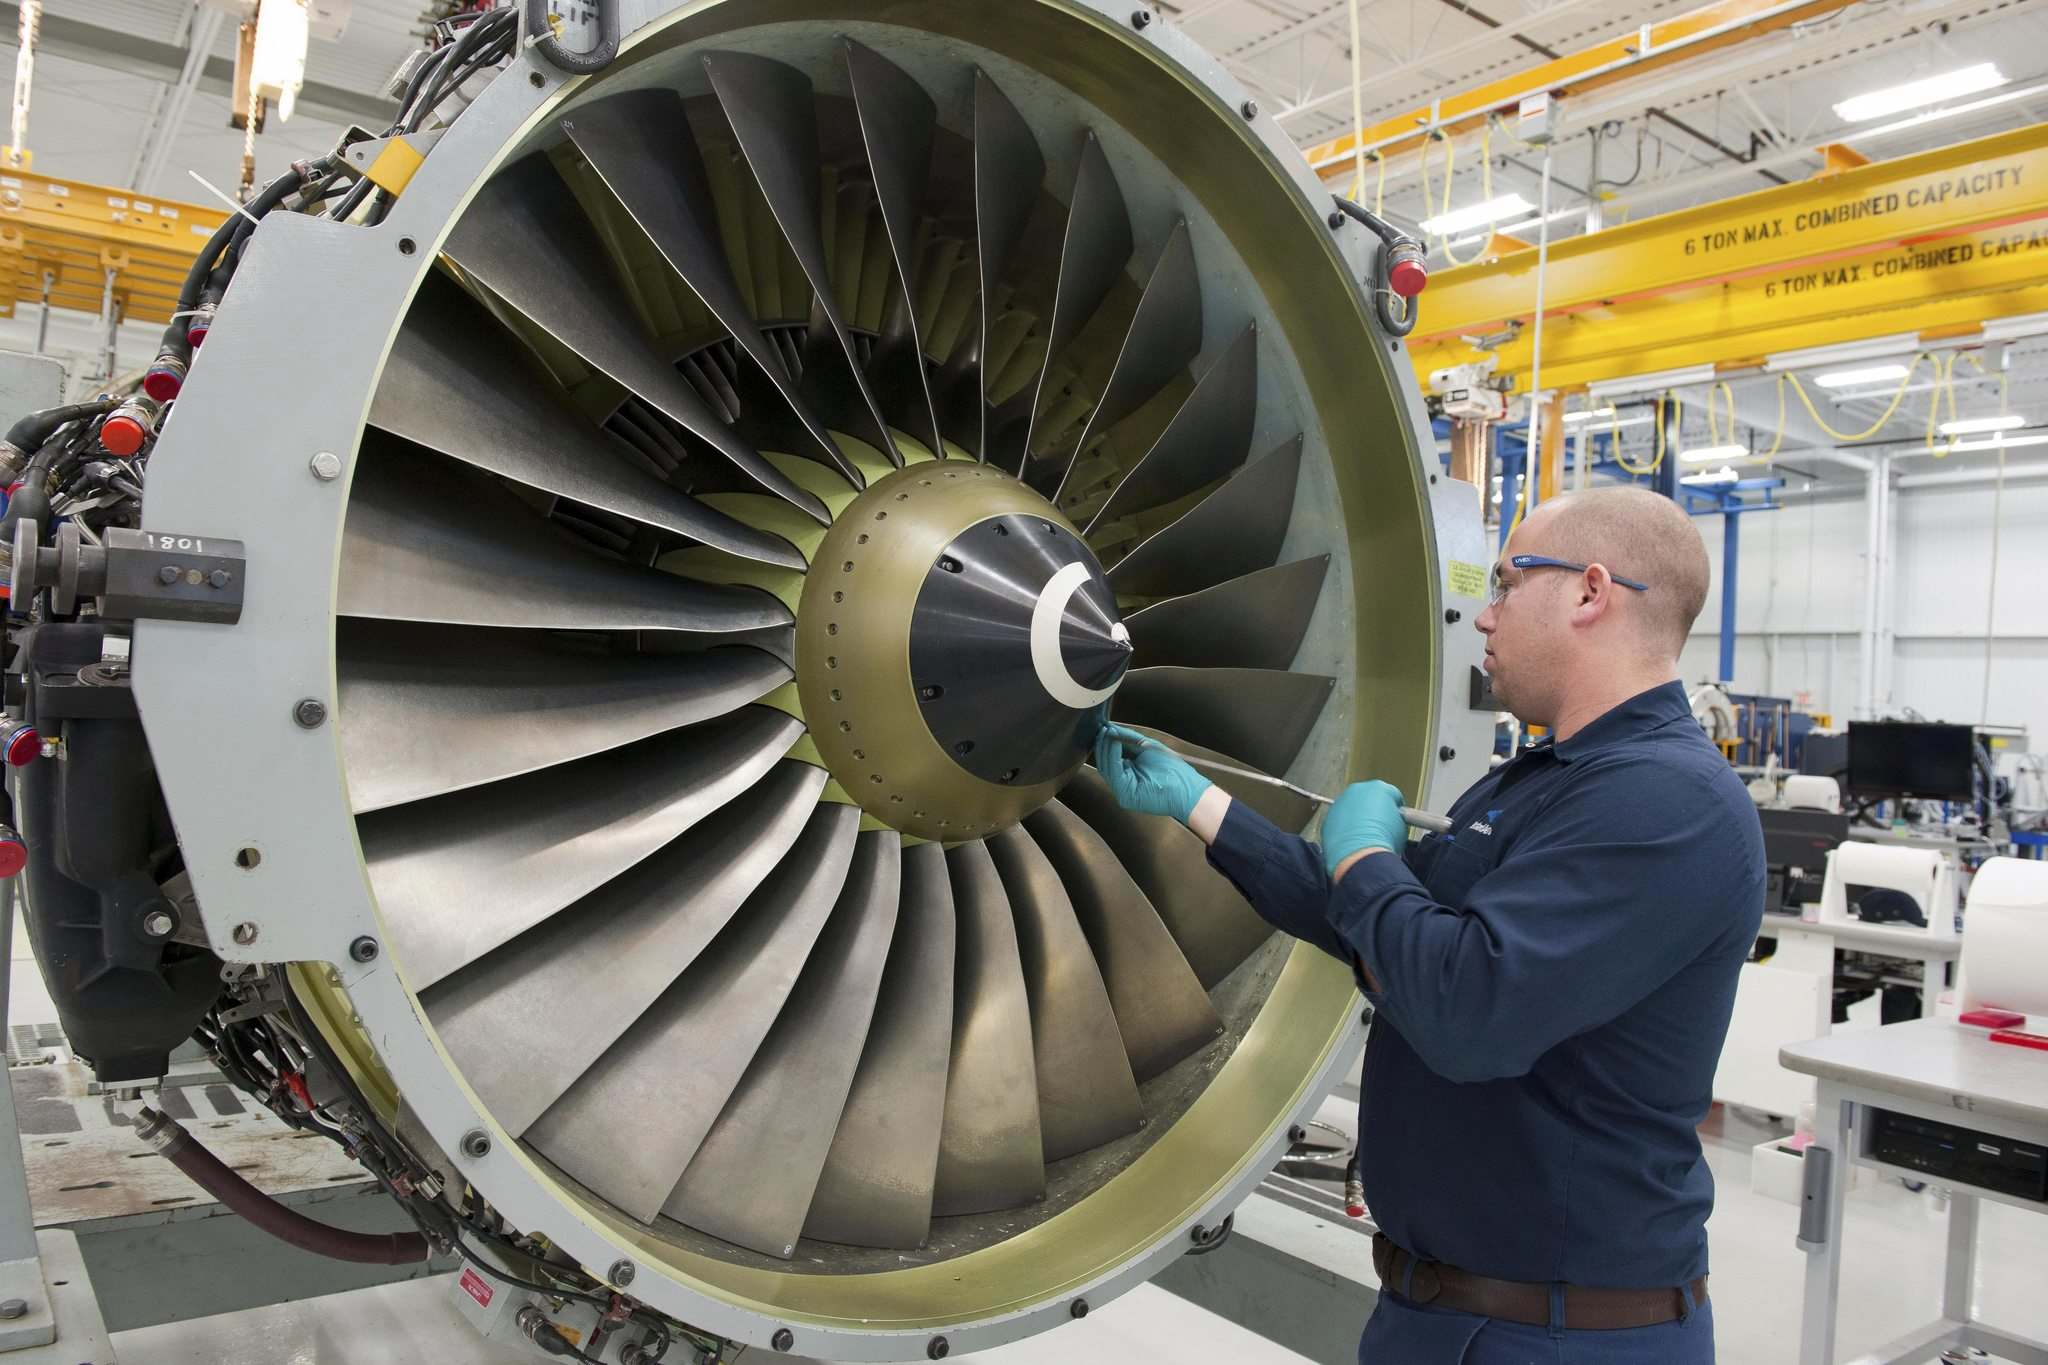 Submitted</p><p>StandardAero turbofan technicians are no strangers when it comes to maintaining and overhauling large aircraft engines in Winnipeg. The company is adding smaller helicopter engines to its local aircraft servicing accounts.</p>